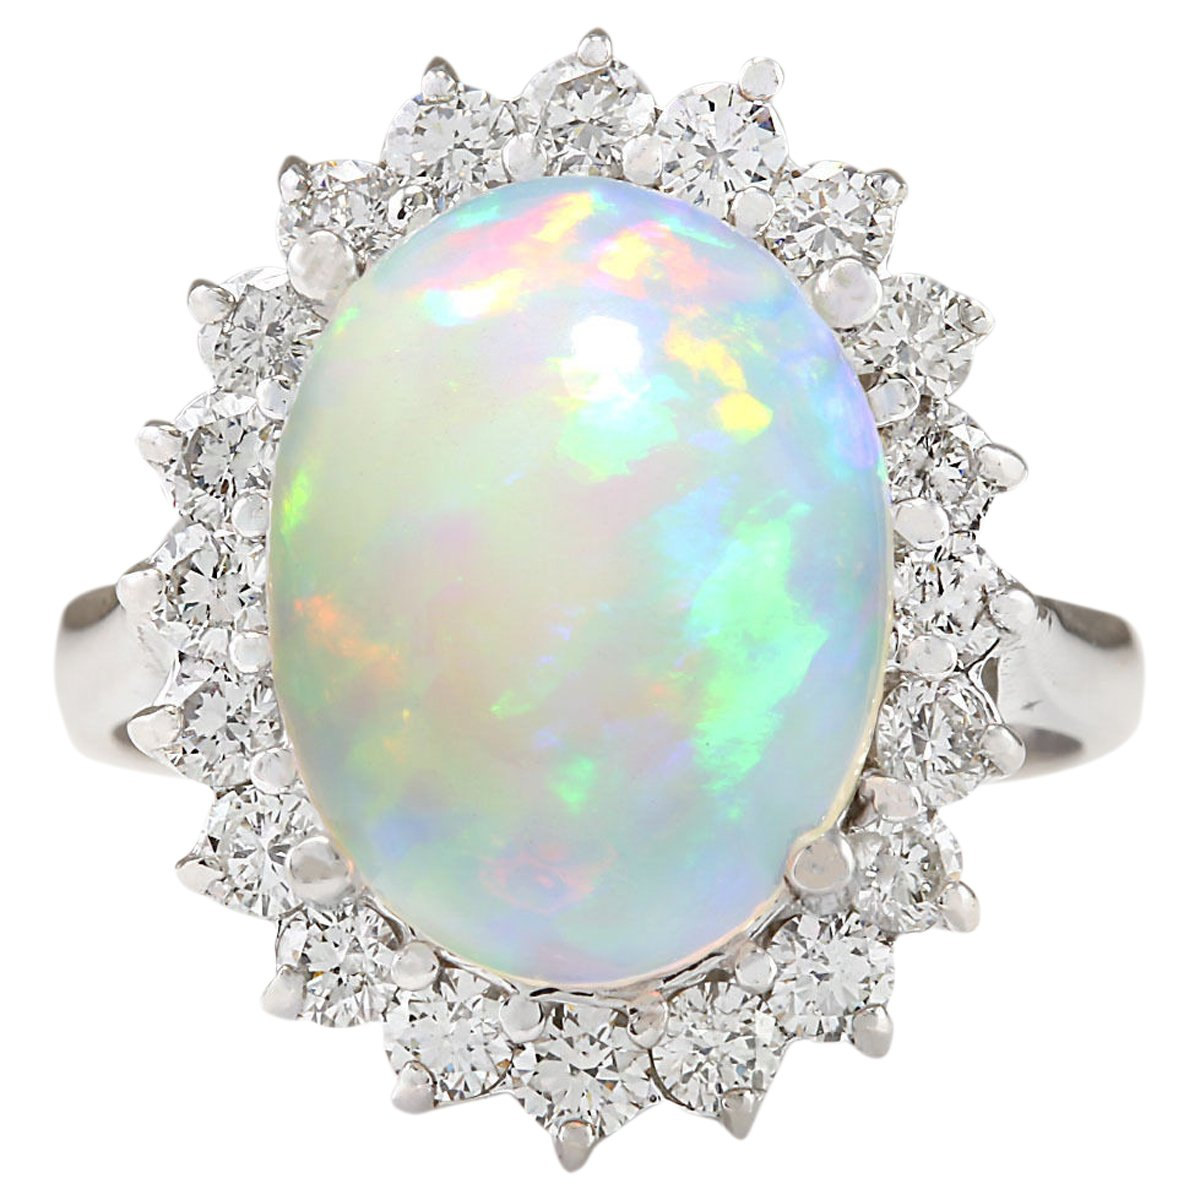 5.19 Carat Natural Multicolor Opal and Diamond 14K White Gold Cocktail Ring for Women